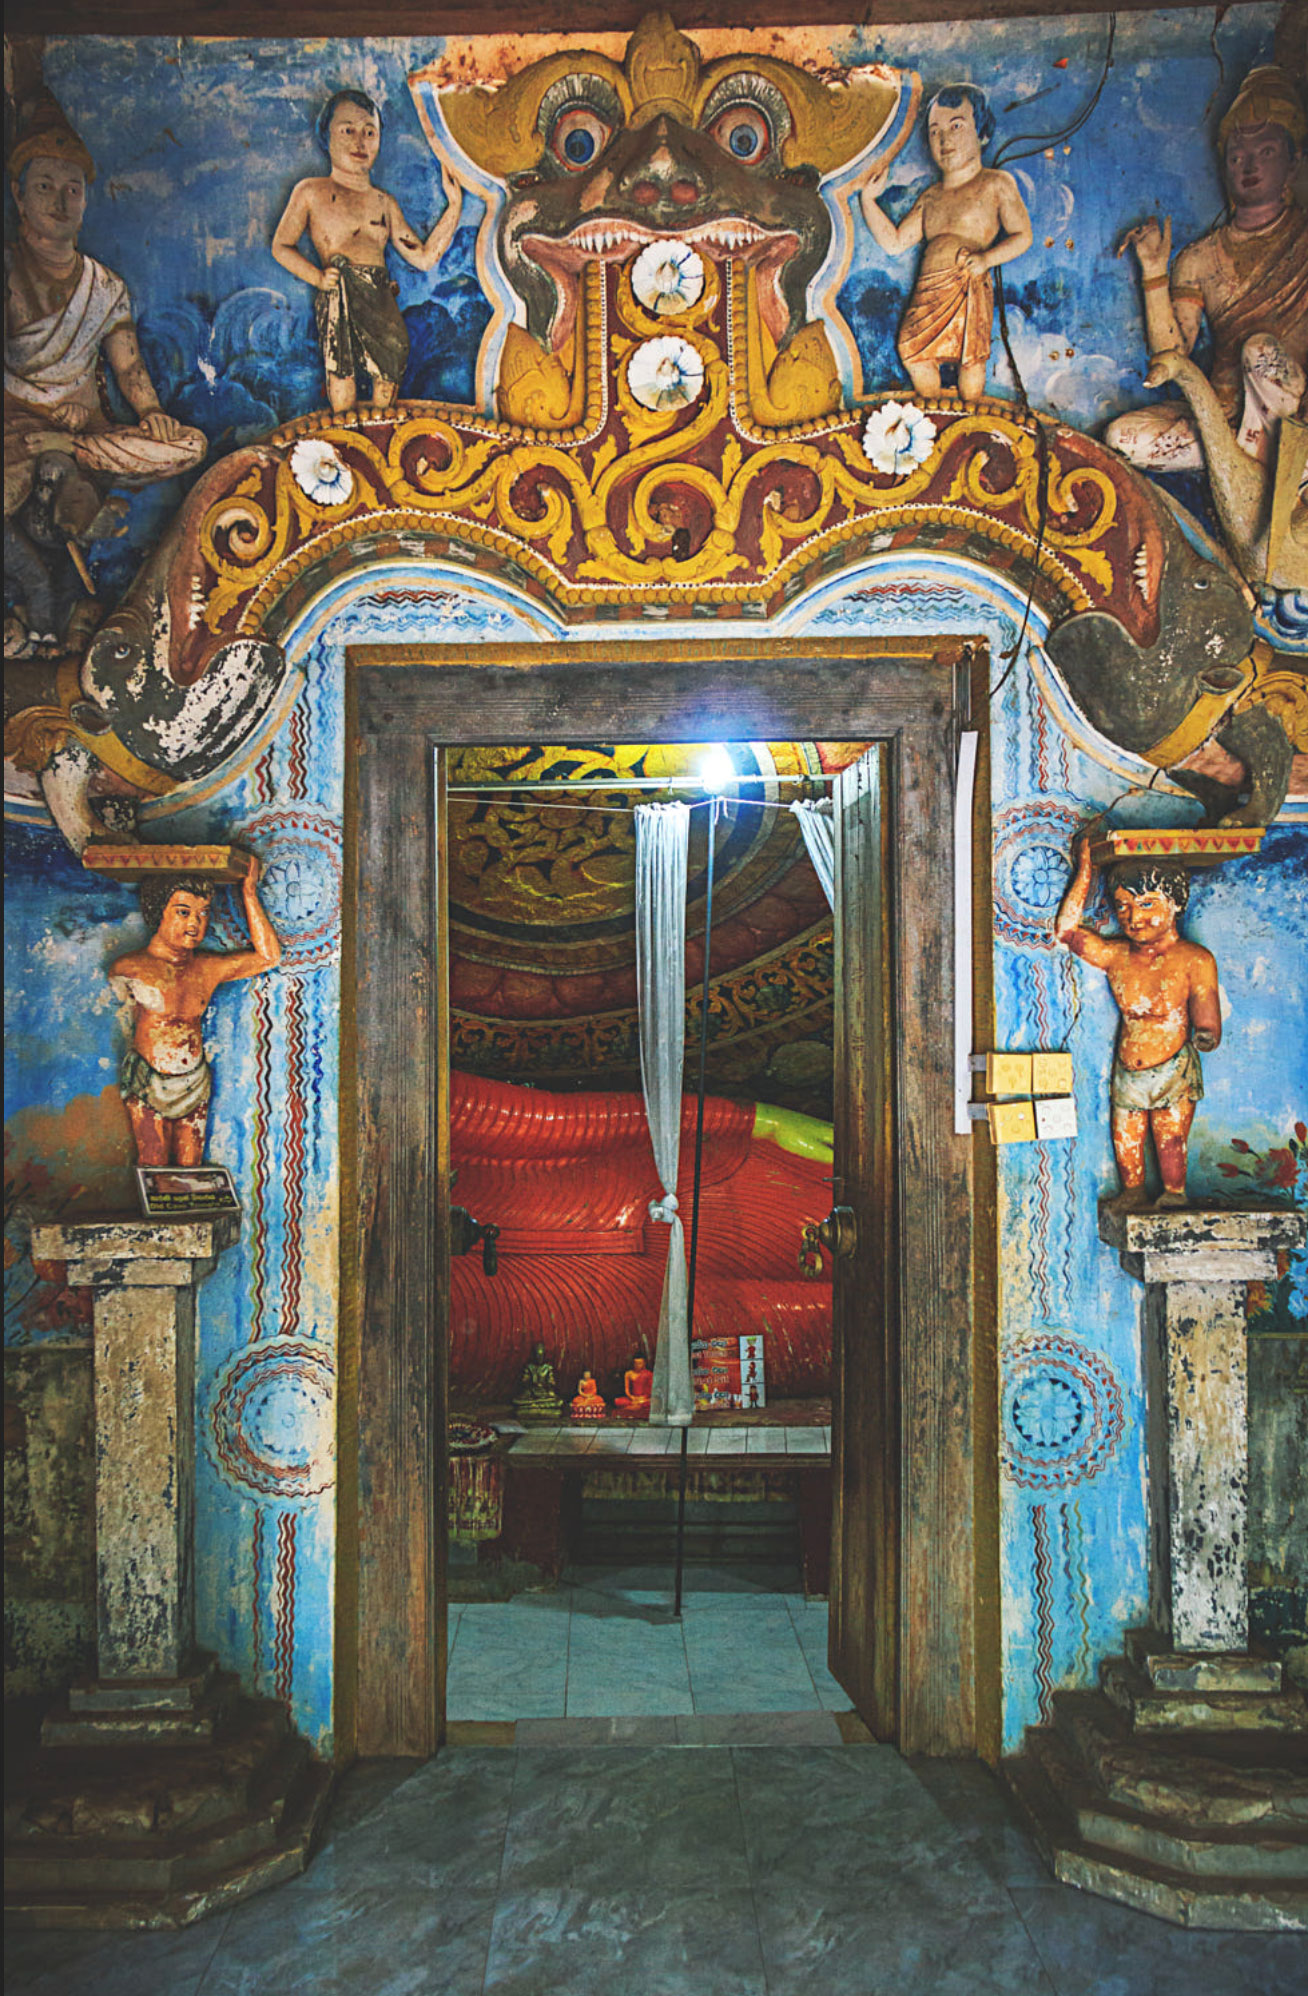 'Makara Thorana' doorway to the inner shrine room of the Pidurangala Viharaya.